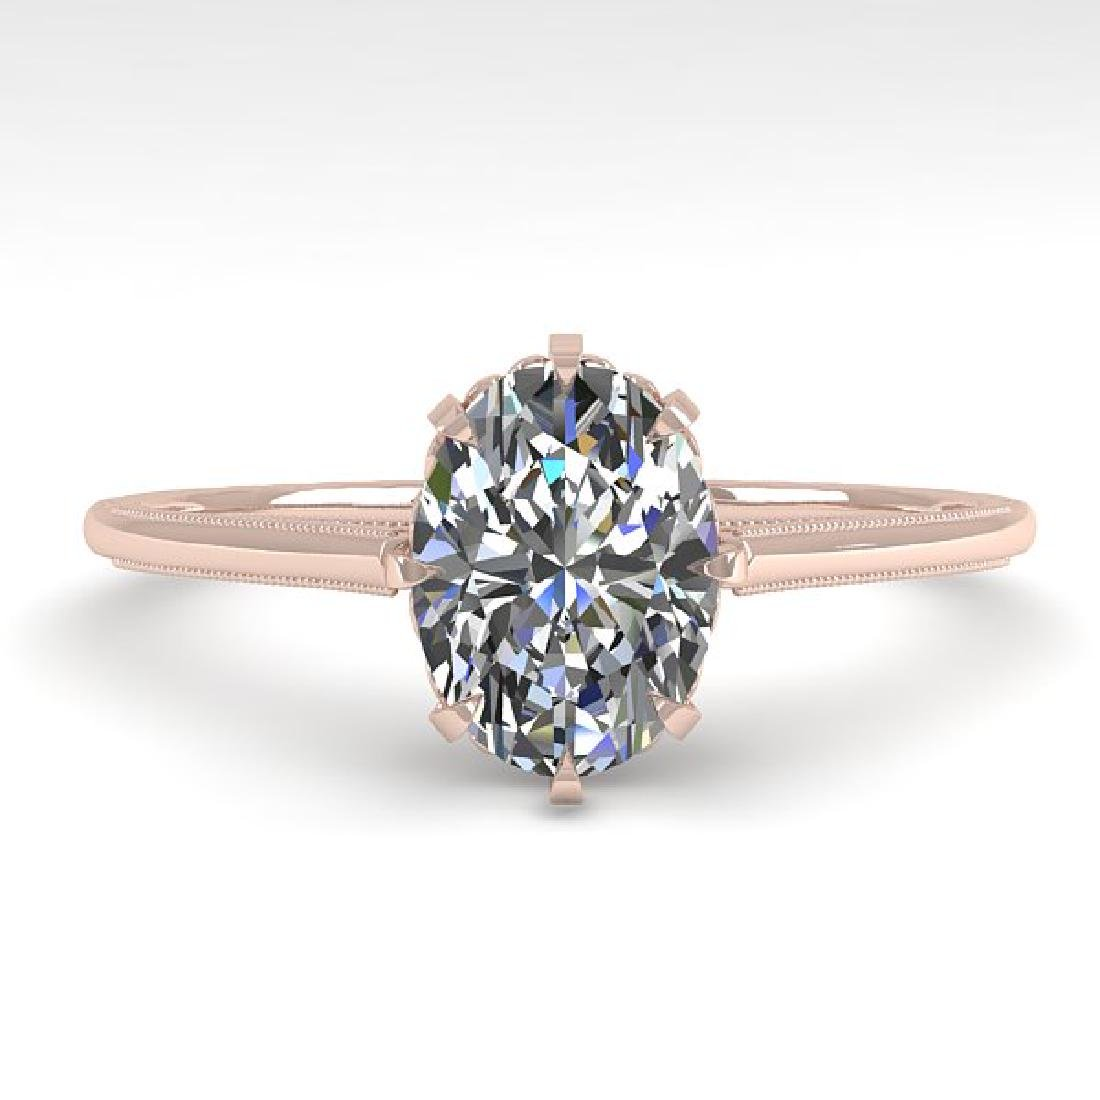 1.0 CTW VS/SI Oval Diamond Solitaire Ring 14K Rose Gold